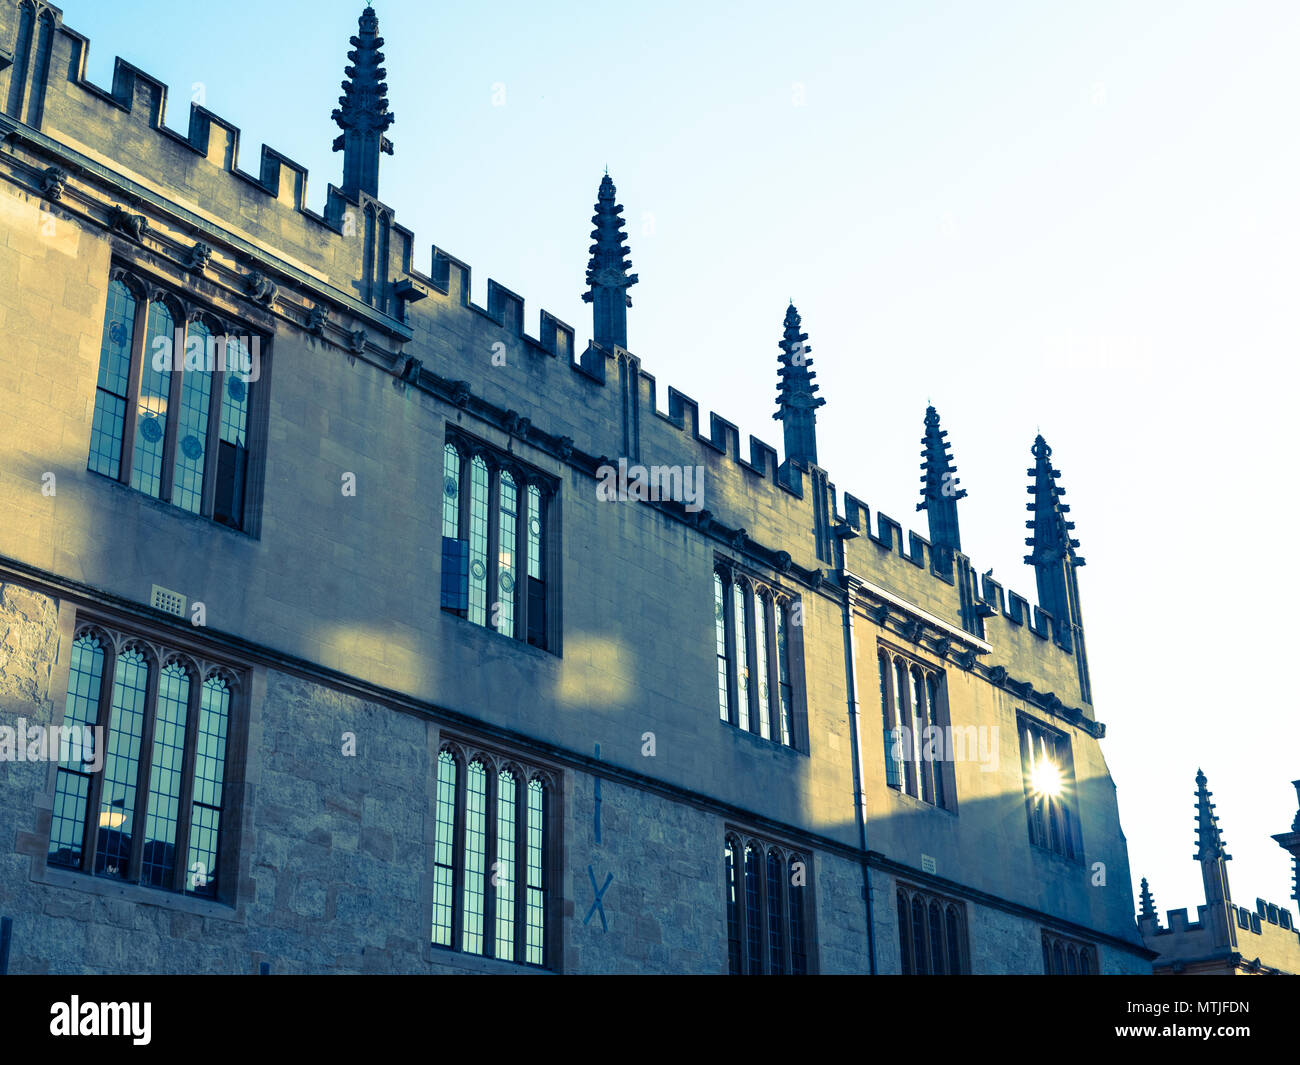 Bodleian Library, B&W, Oxford, Oxfordshire, England, UK, GB. - Stock Image